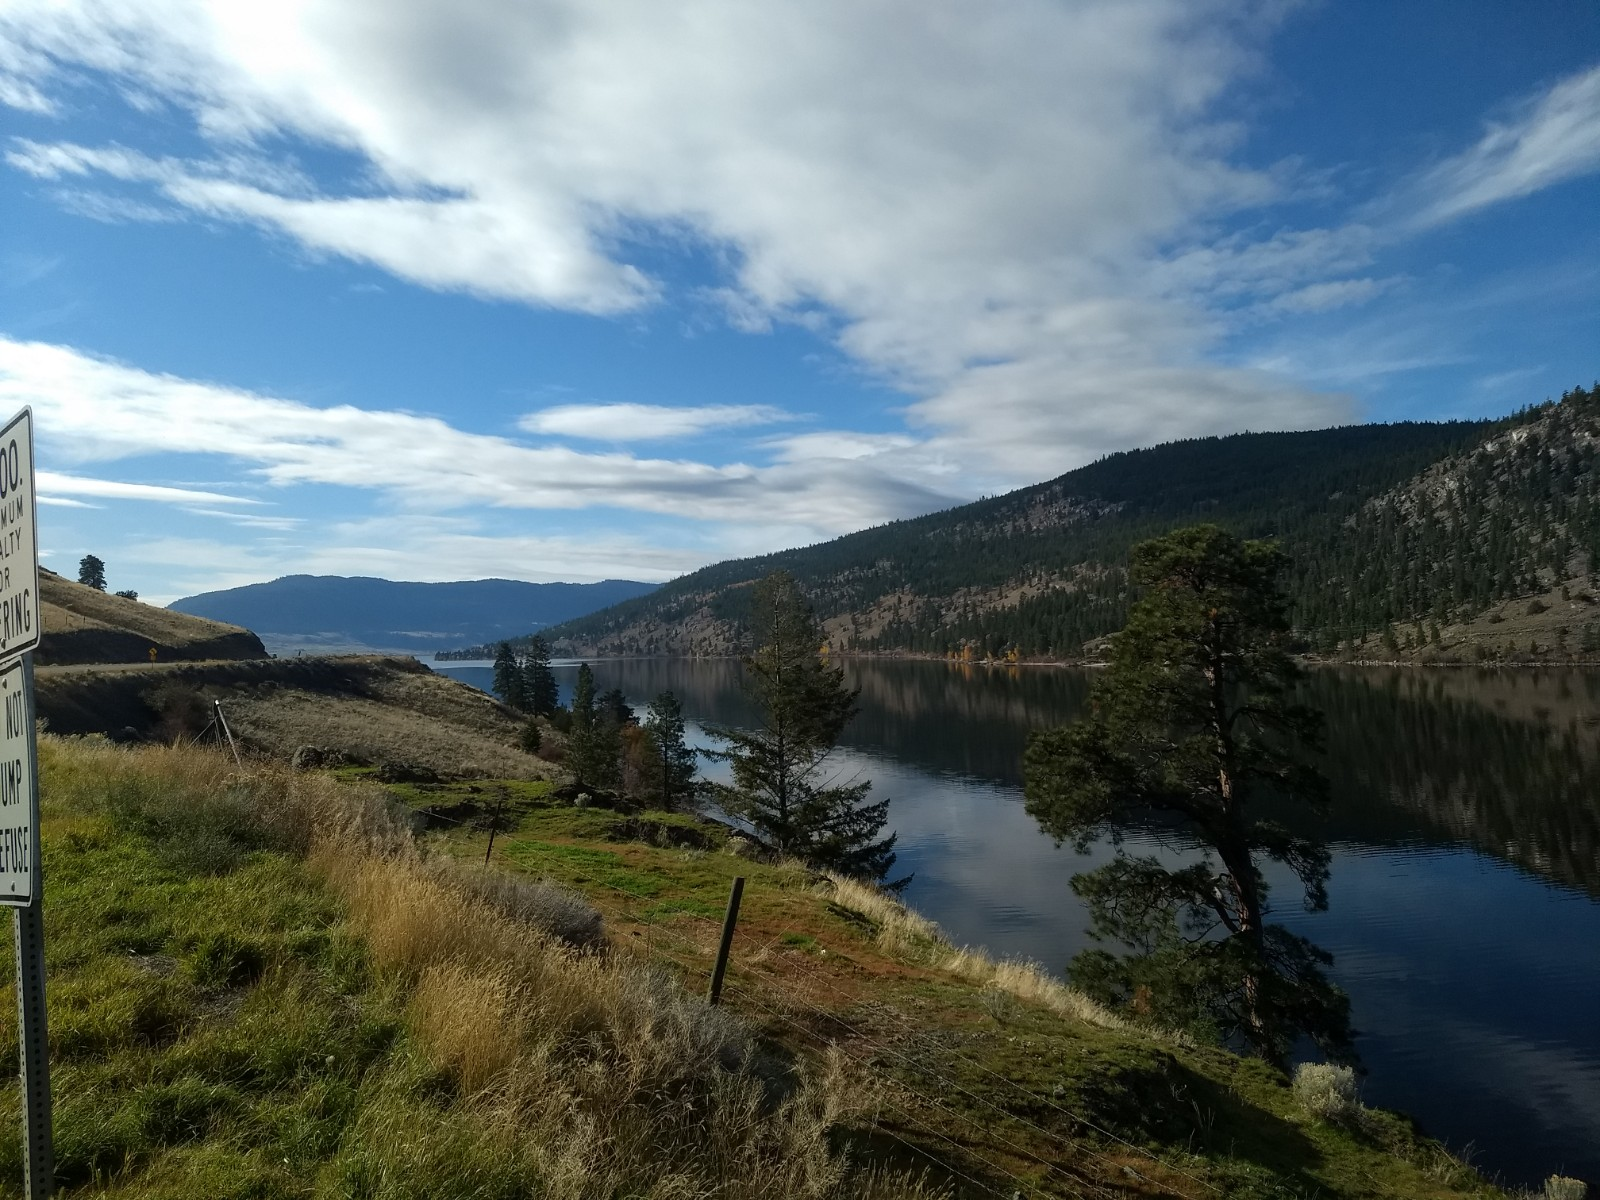 Nicola Valley, Fall 2019